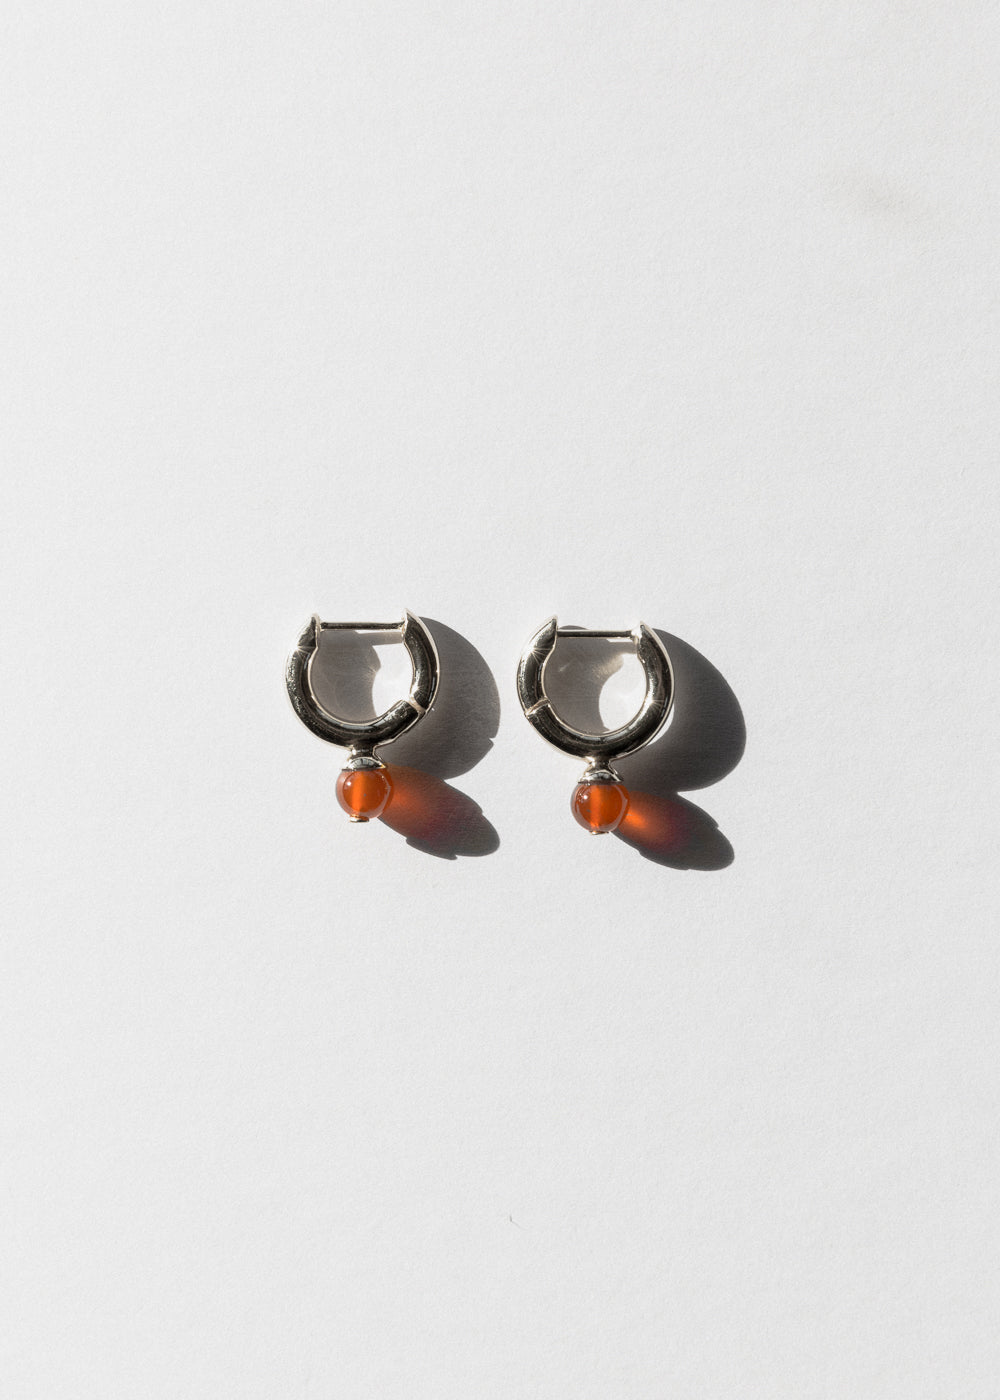 Jasmin Sparrow stirling silver carnelian hoop earrings on Maker's mrkt Maker's market melbourne